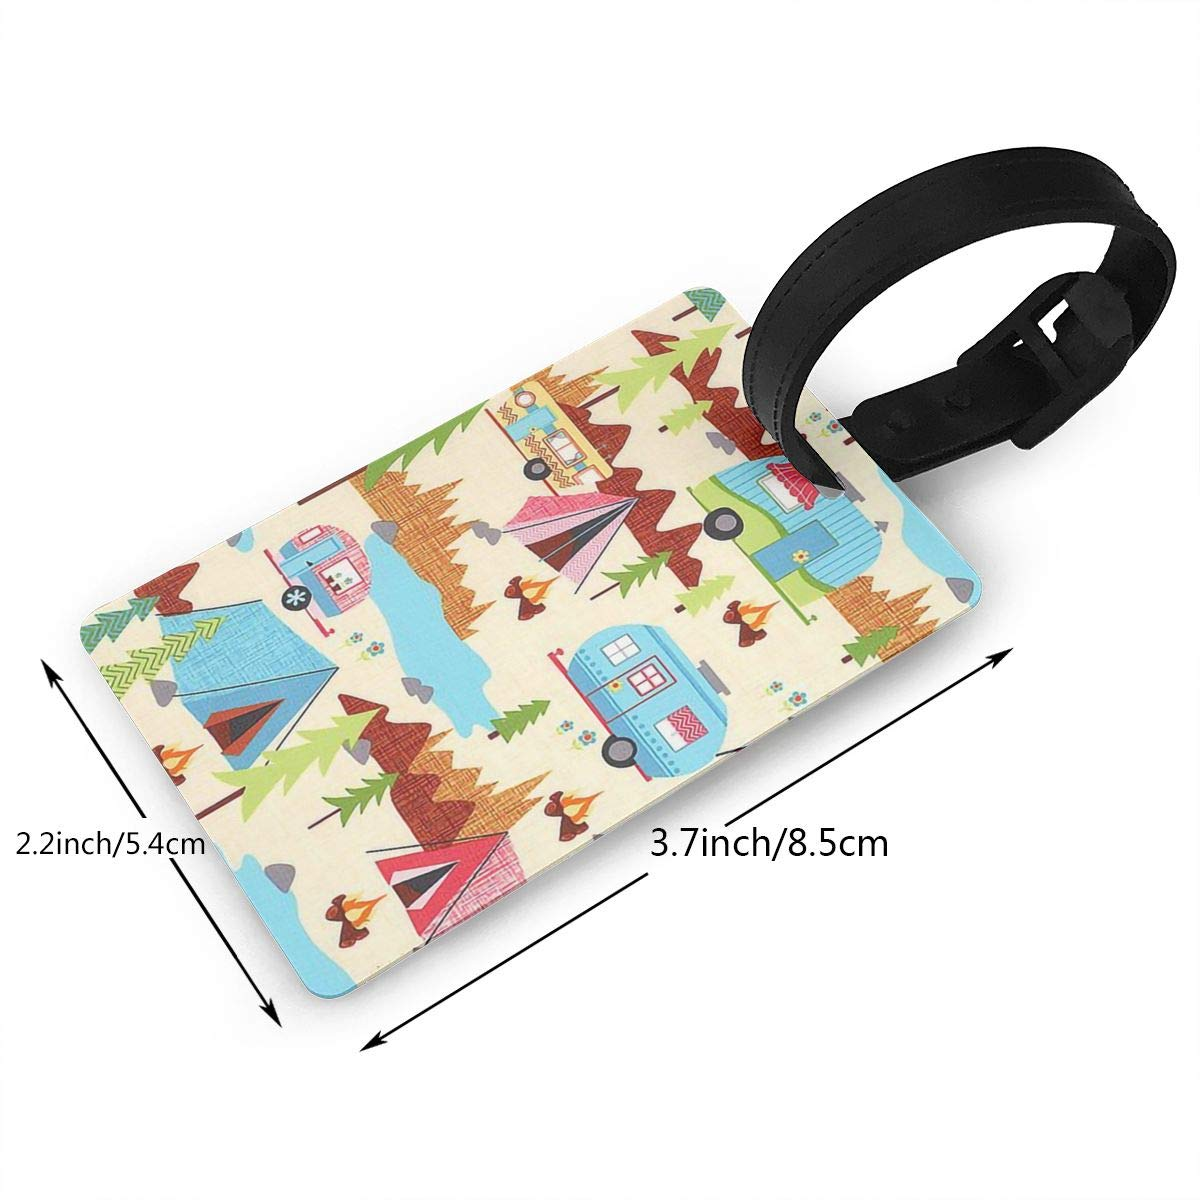 2 Pack Luggage Tags Camping Handbag Tag For Travel Bag Suitcase Accessories